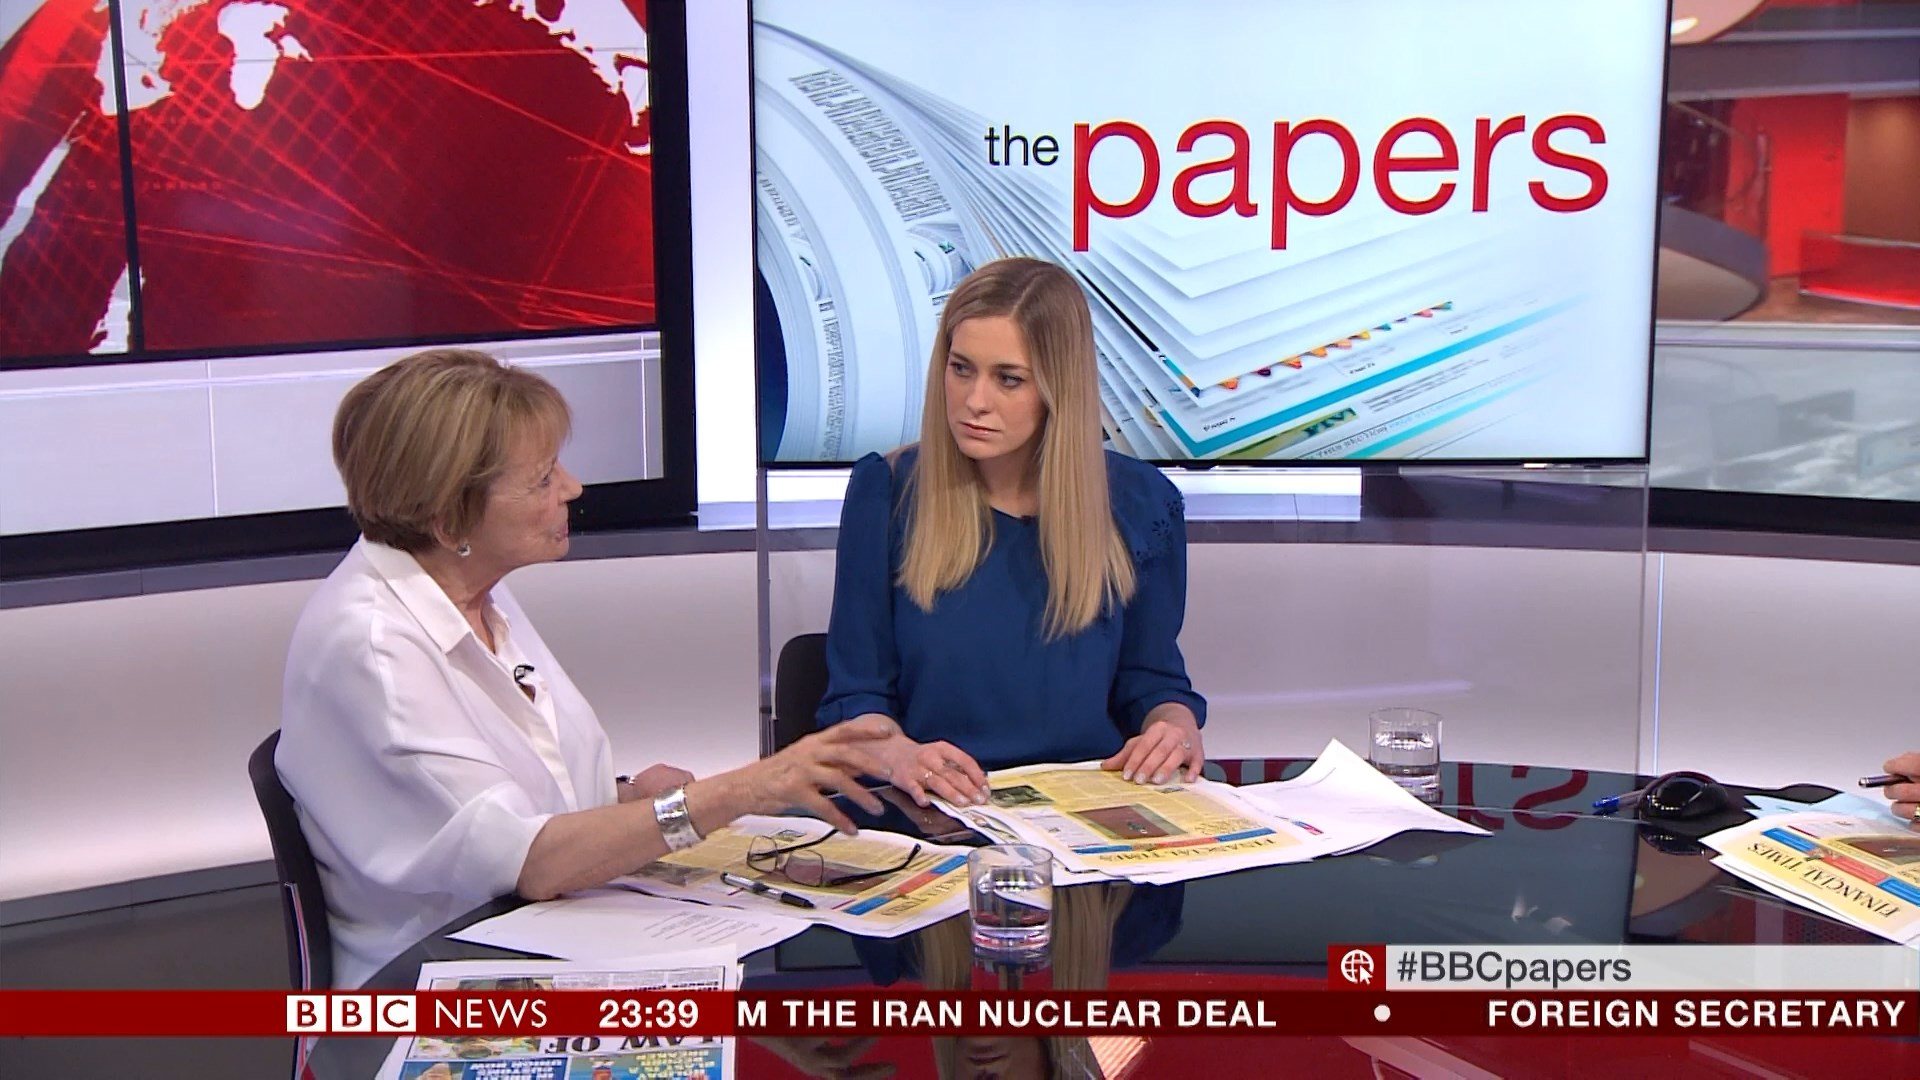 69946974_the-papers_20180507_23302345-ts_snapshot_10-12_-2018-05-08_00-41-45.jpg